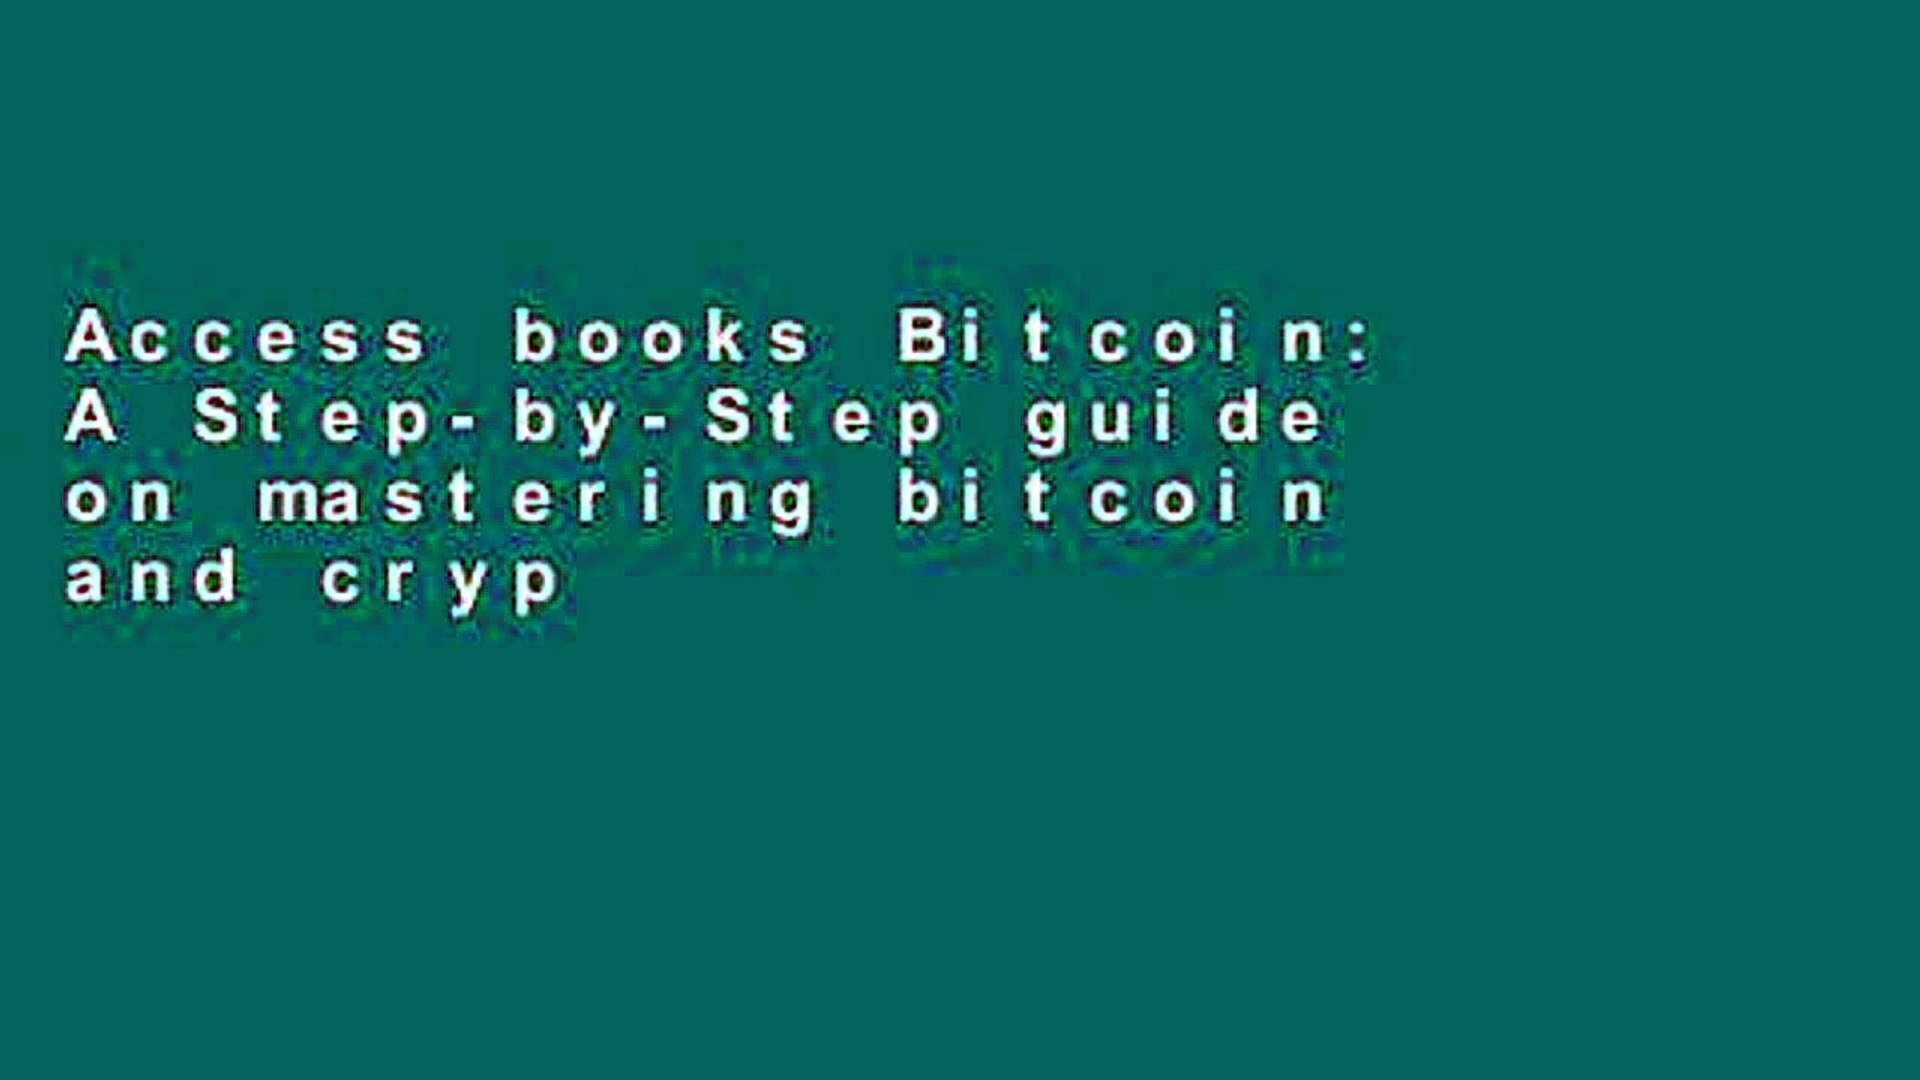 Access books Bitcoin: A Step-by-Step guide on mastering bitcoin and cryptocurrencies (blockchain,